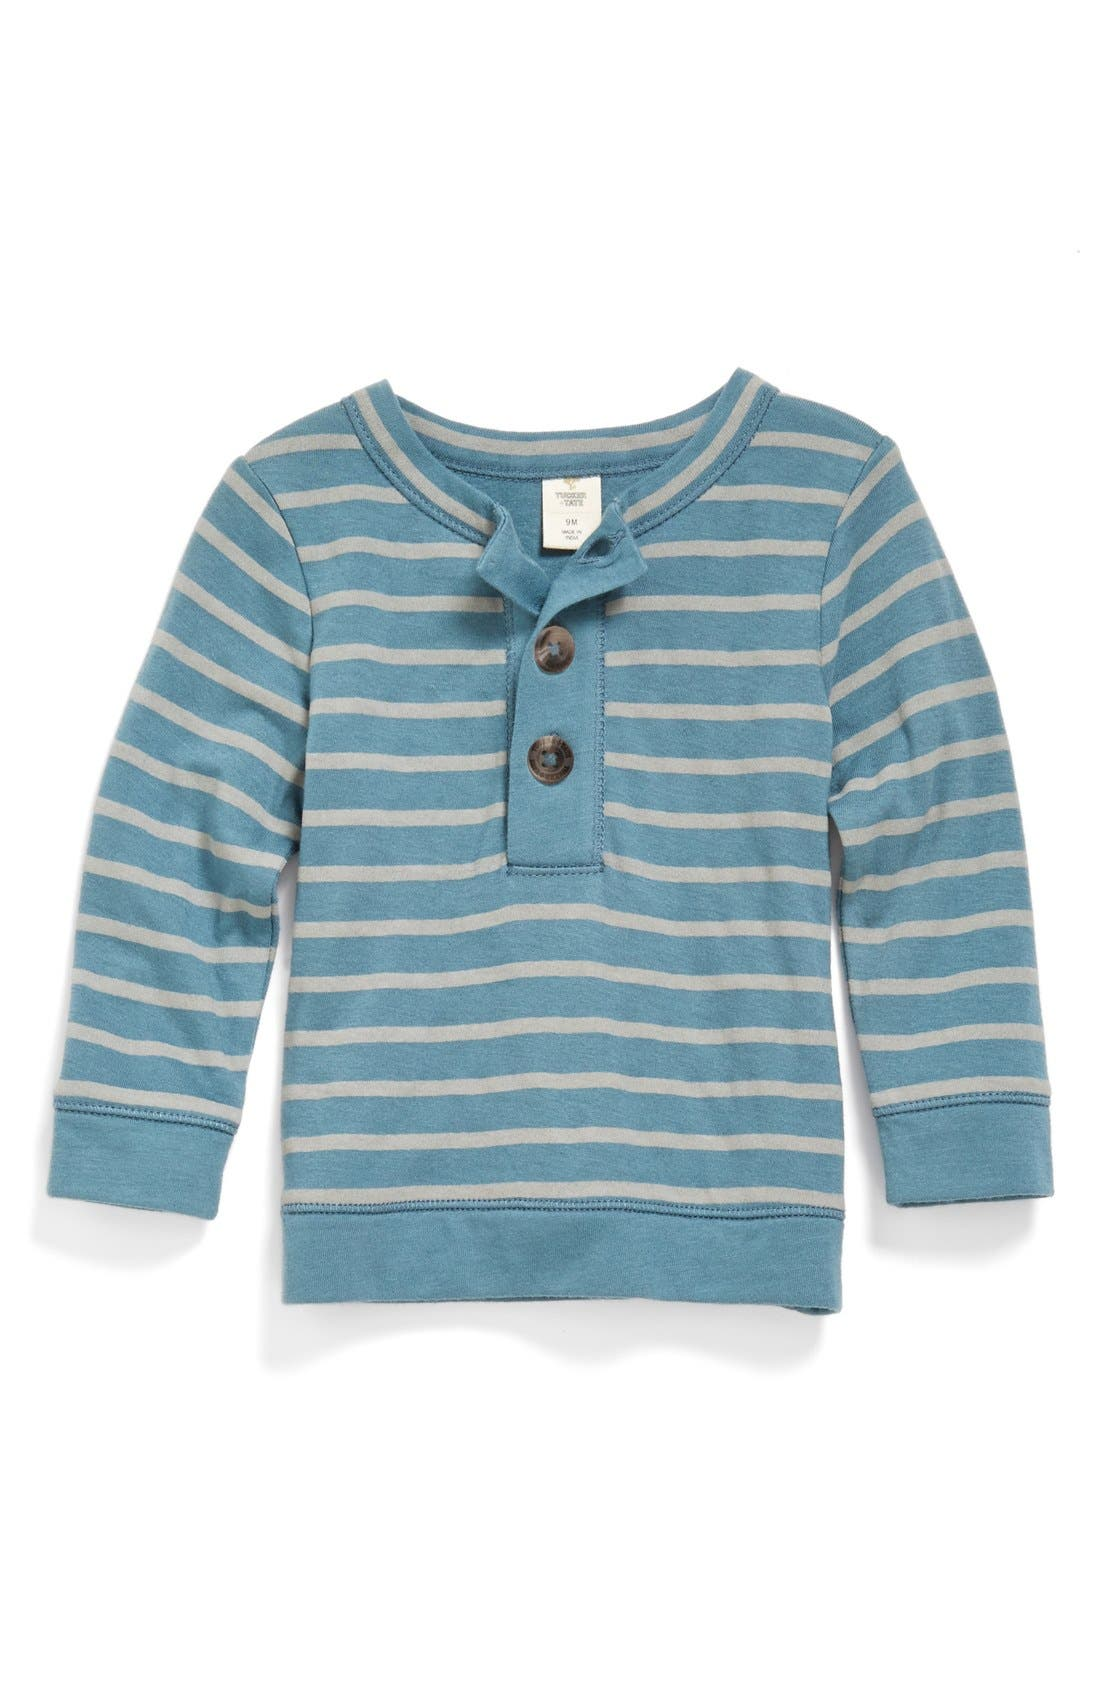 Alternate Image 1 Selected - Tucker + Tate Double Knit Henley (Baby Boys)